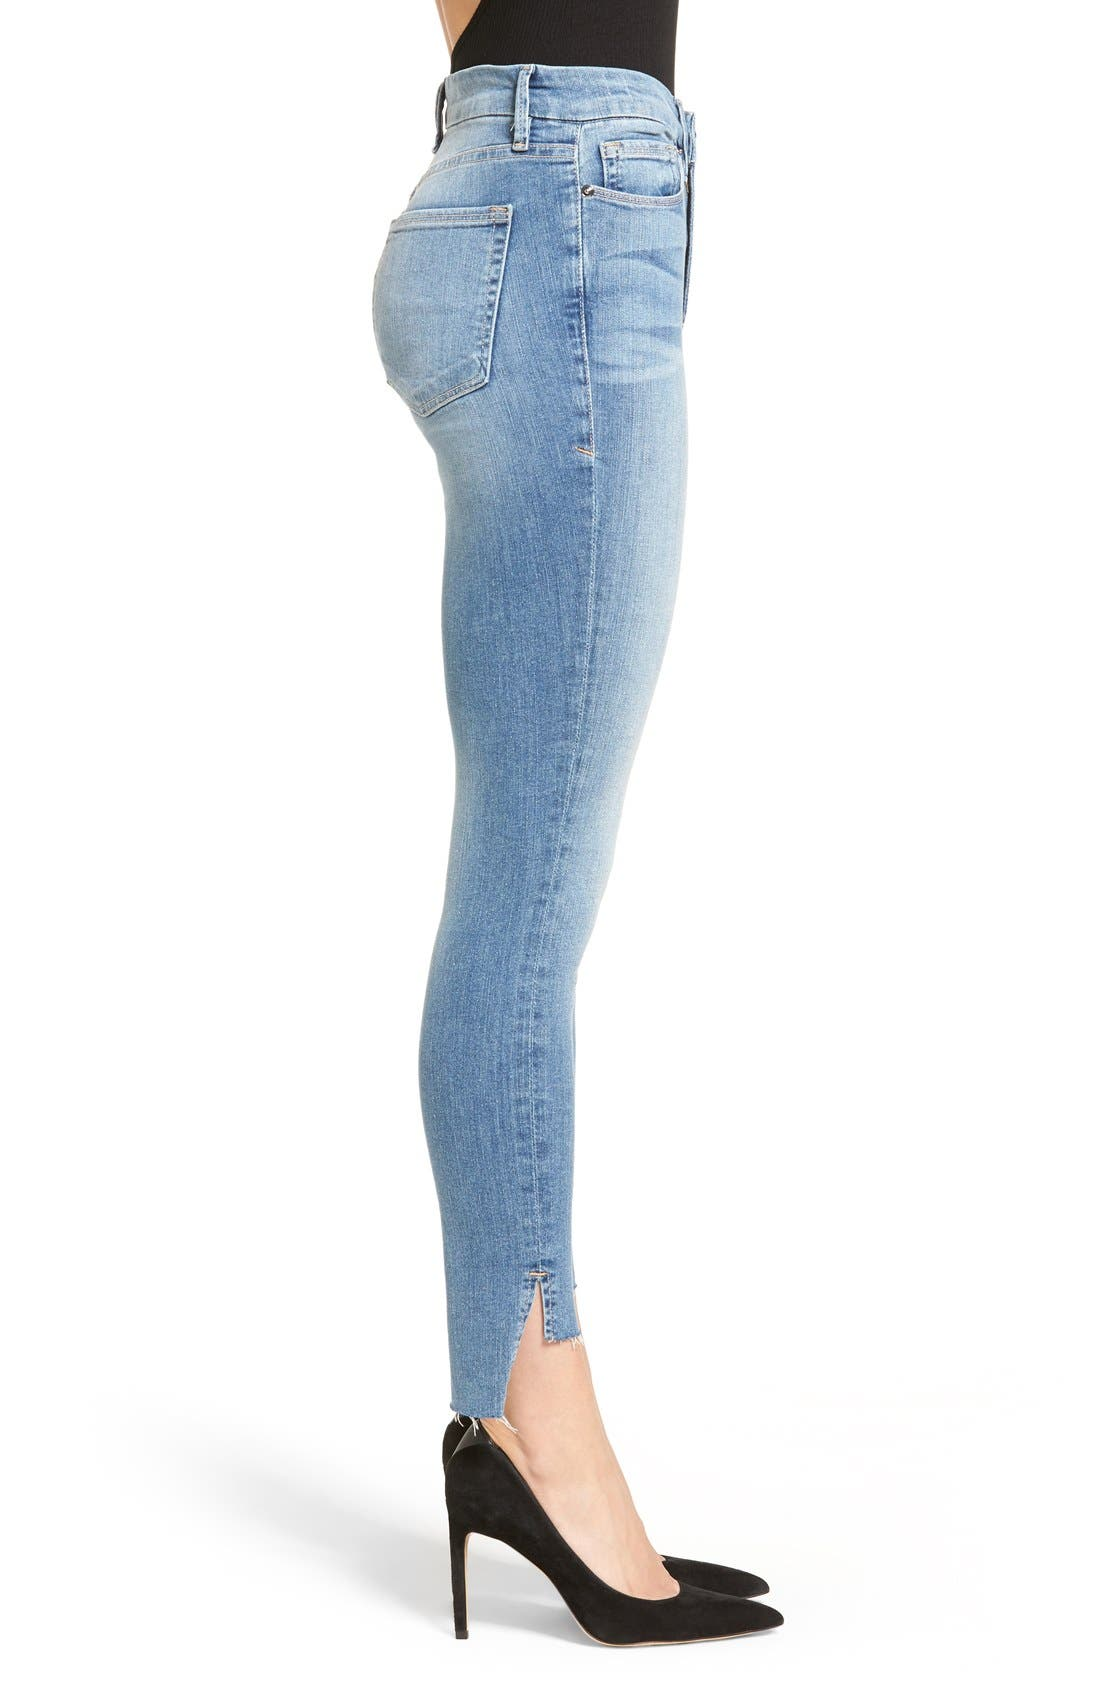 Alternate Image 4  - Good American Good Legs High Waist Skinny Jeans (Blue 007) (Extended Sizes)